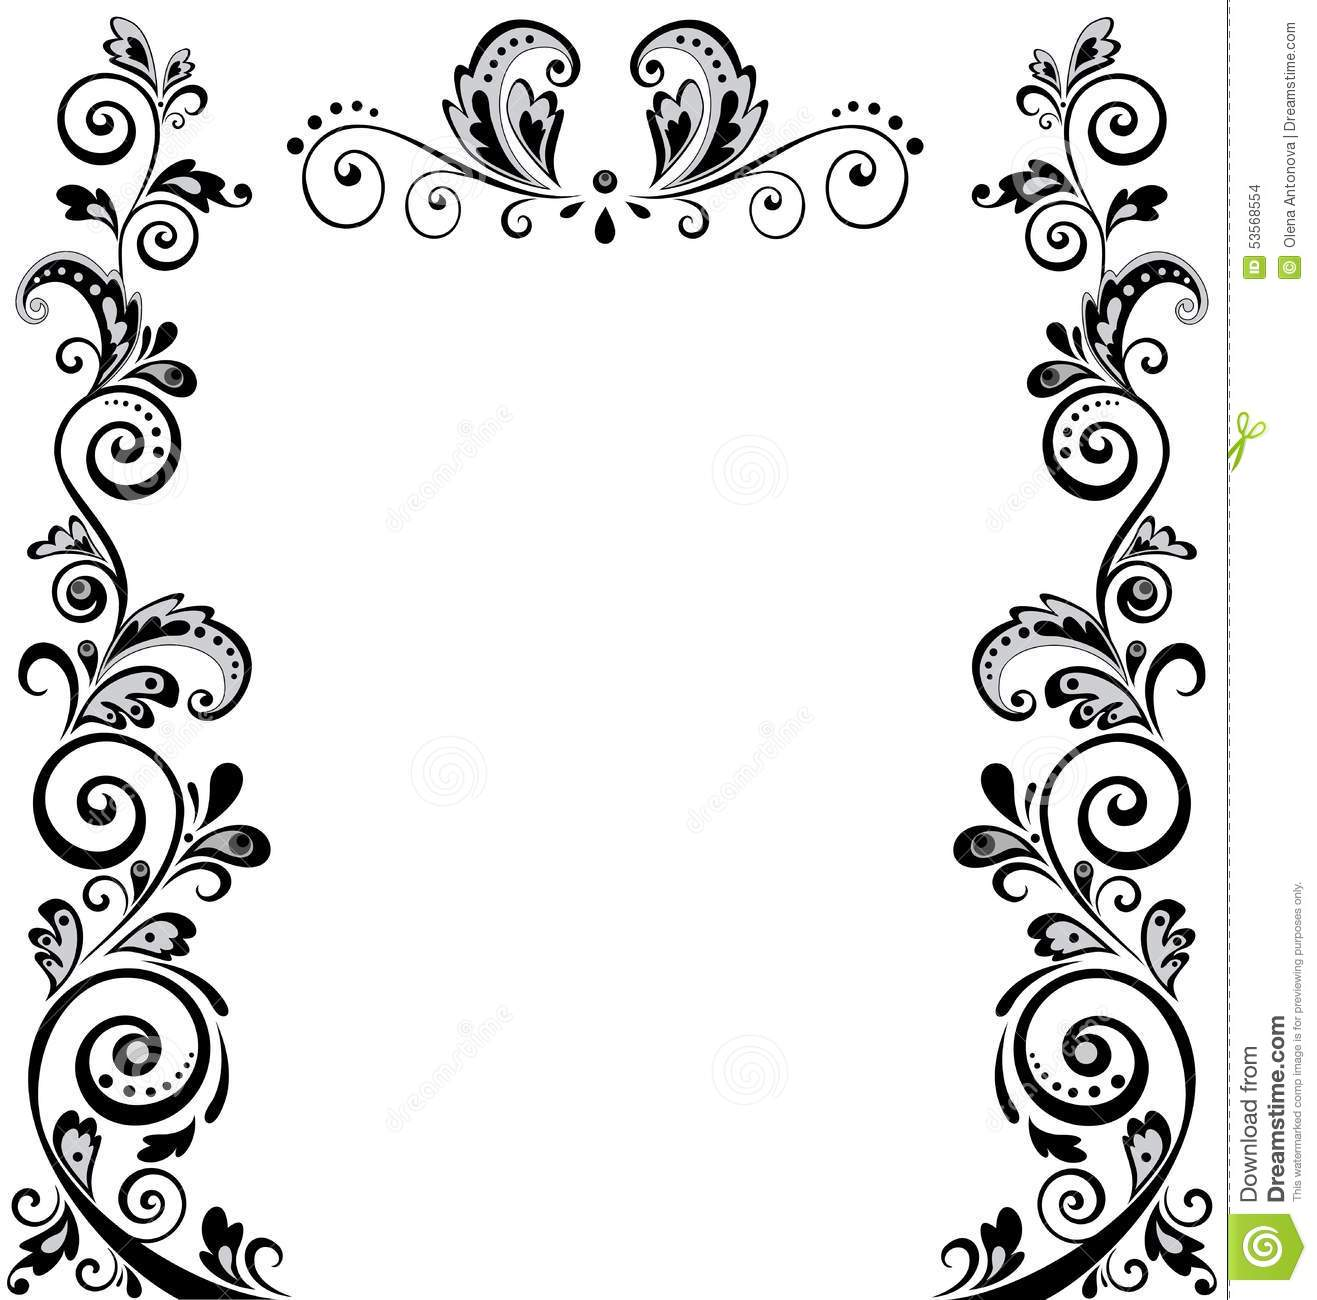 Vintage Wedding Floral Border Black And White